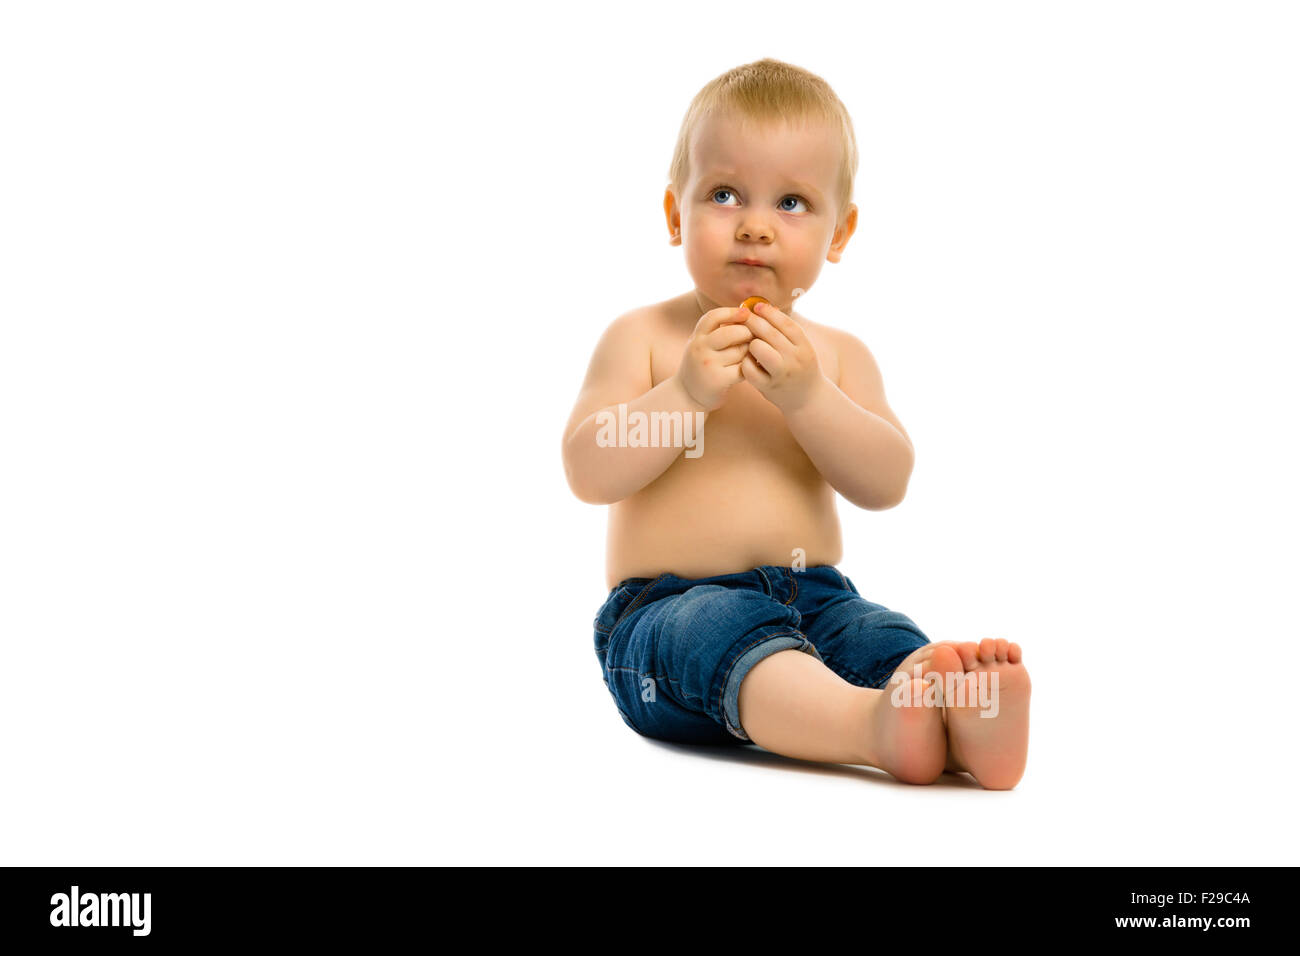 baby boy sitting on a white floor - Stock Image